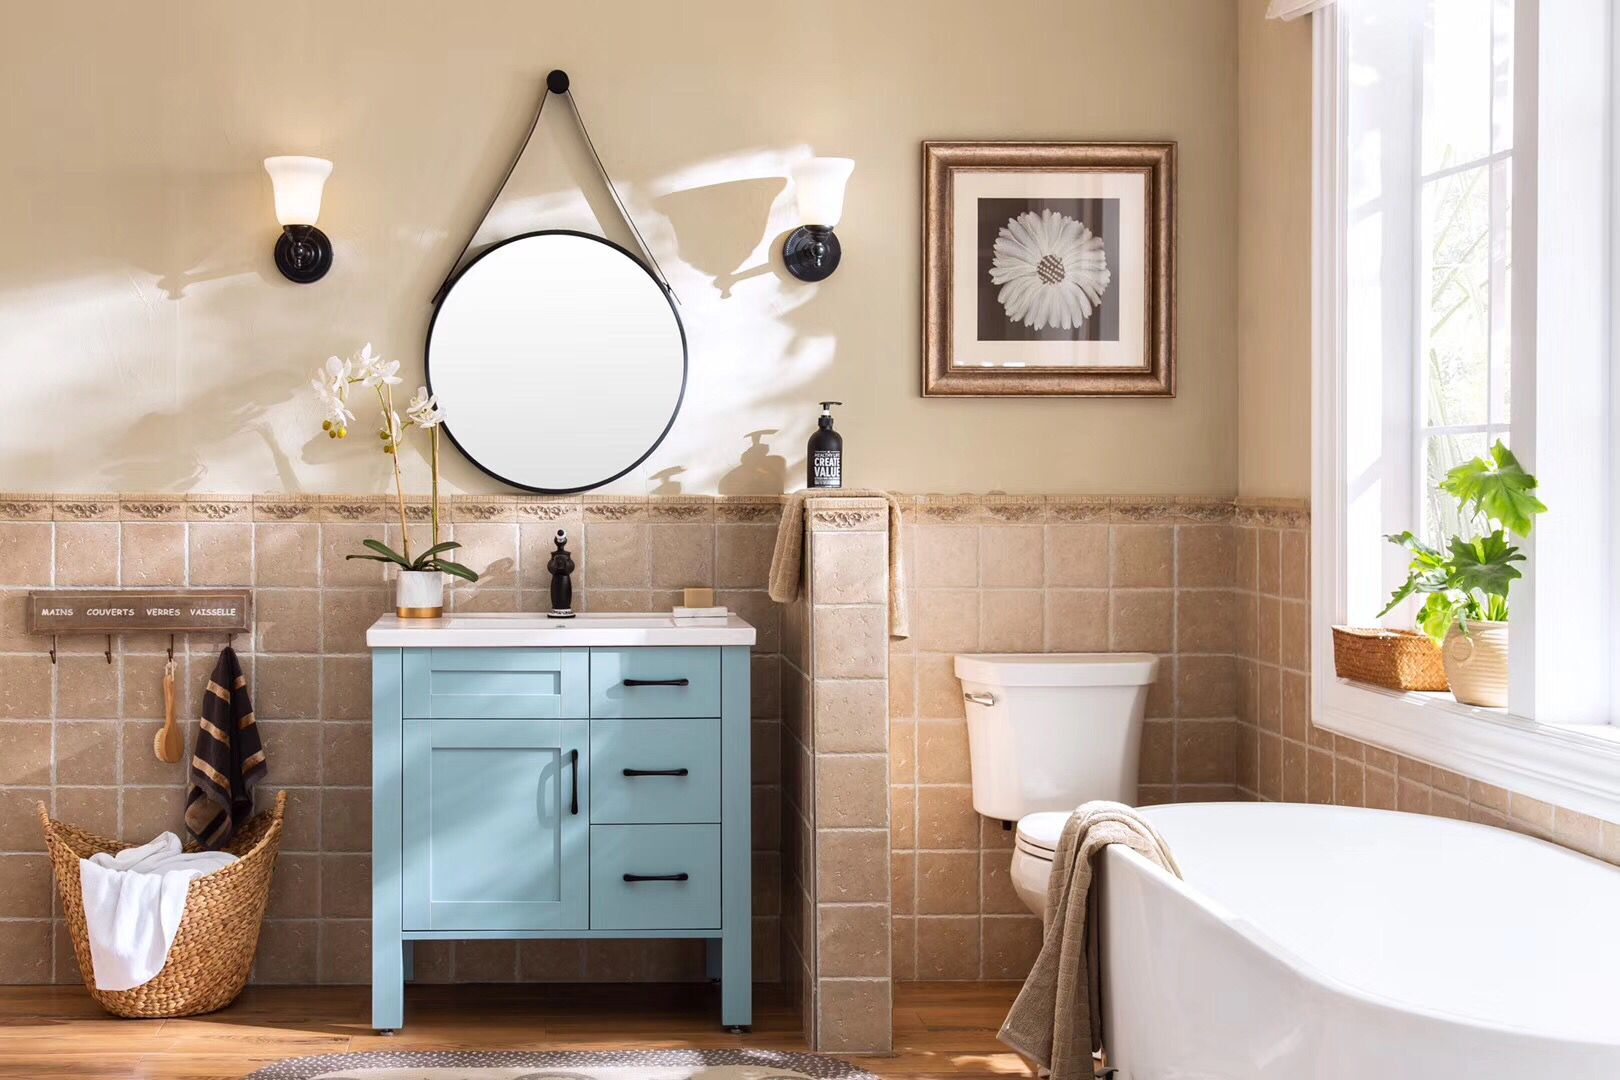 Light Blue Bathroom Vanity With Medicine Cabinet And Round Iron Frame Mirror